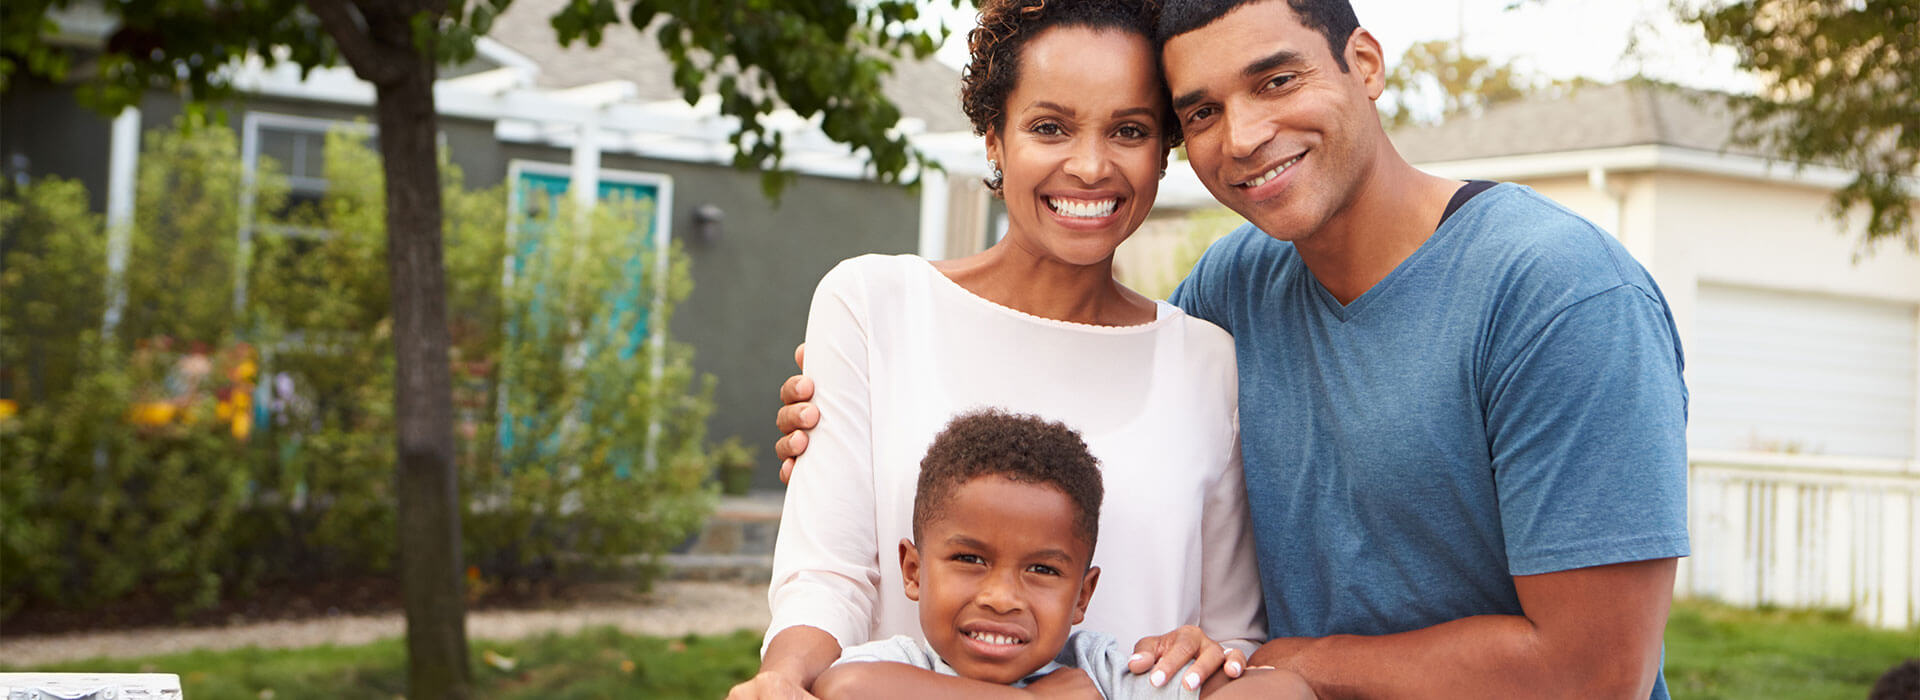 Get the Protection of Dental Sealants with Your Family Dentist in Philadelphia